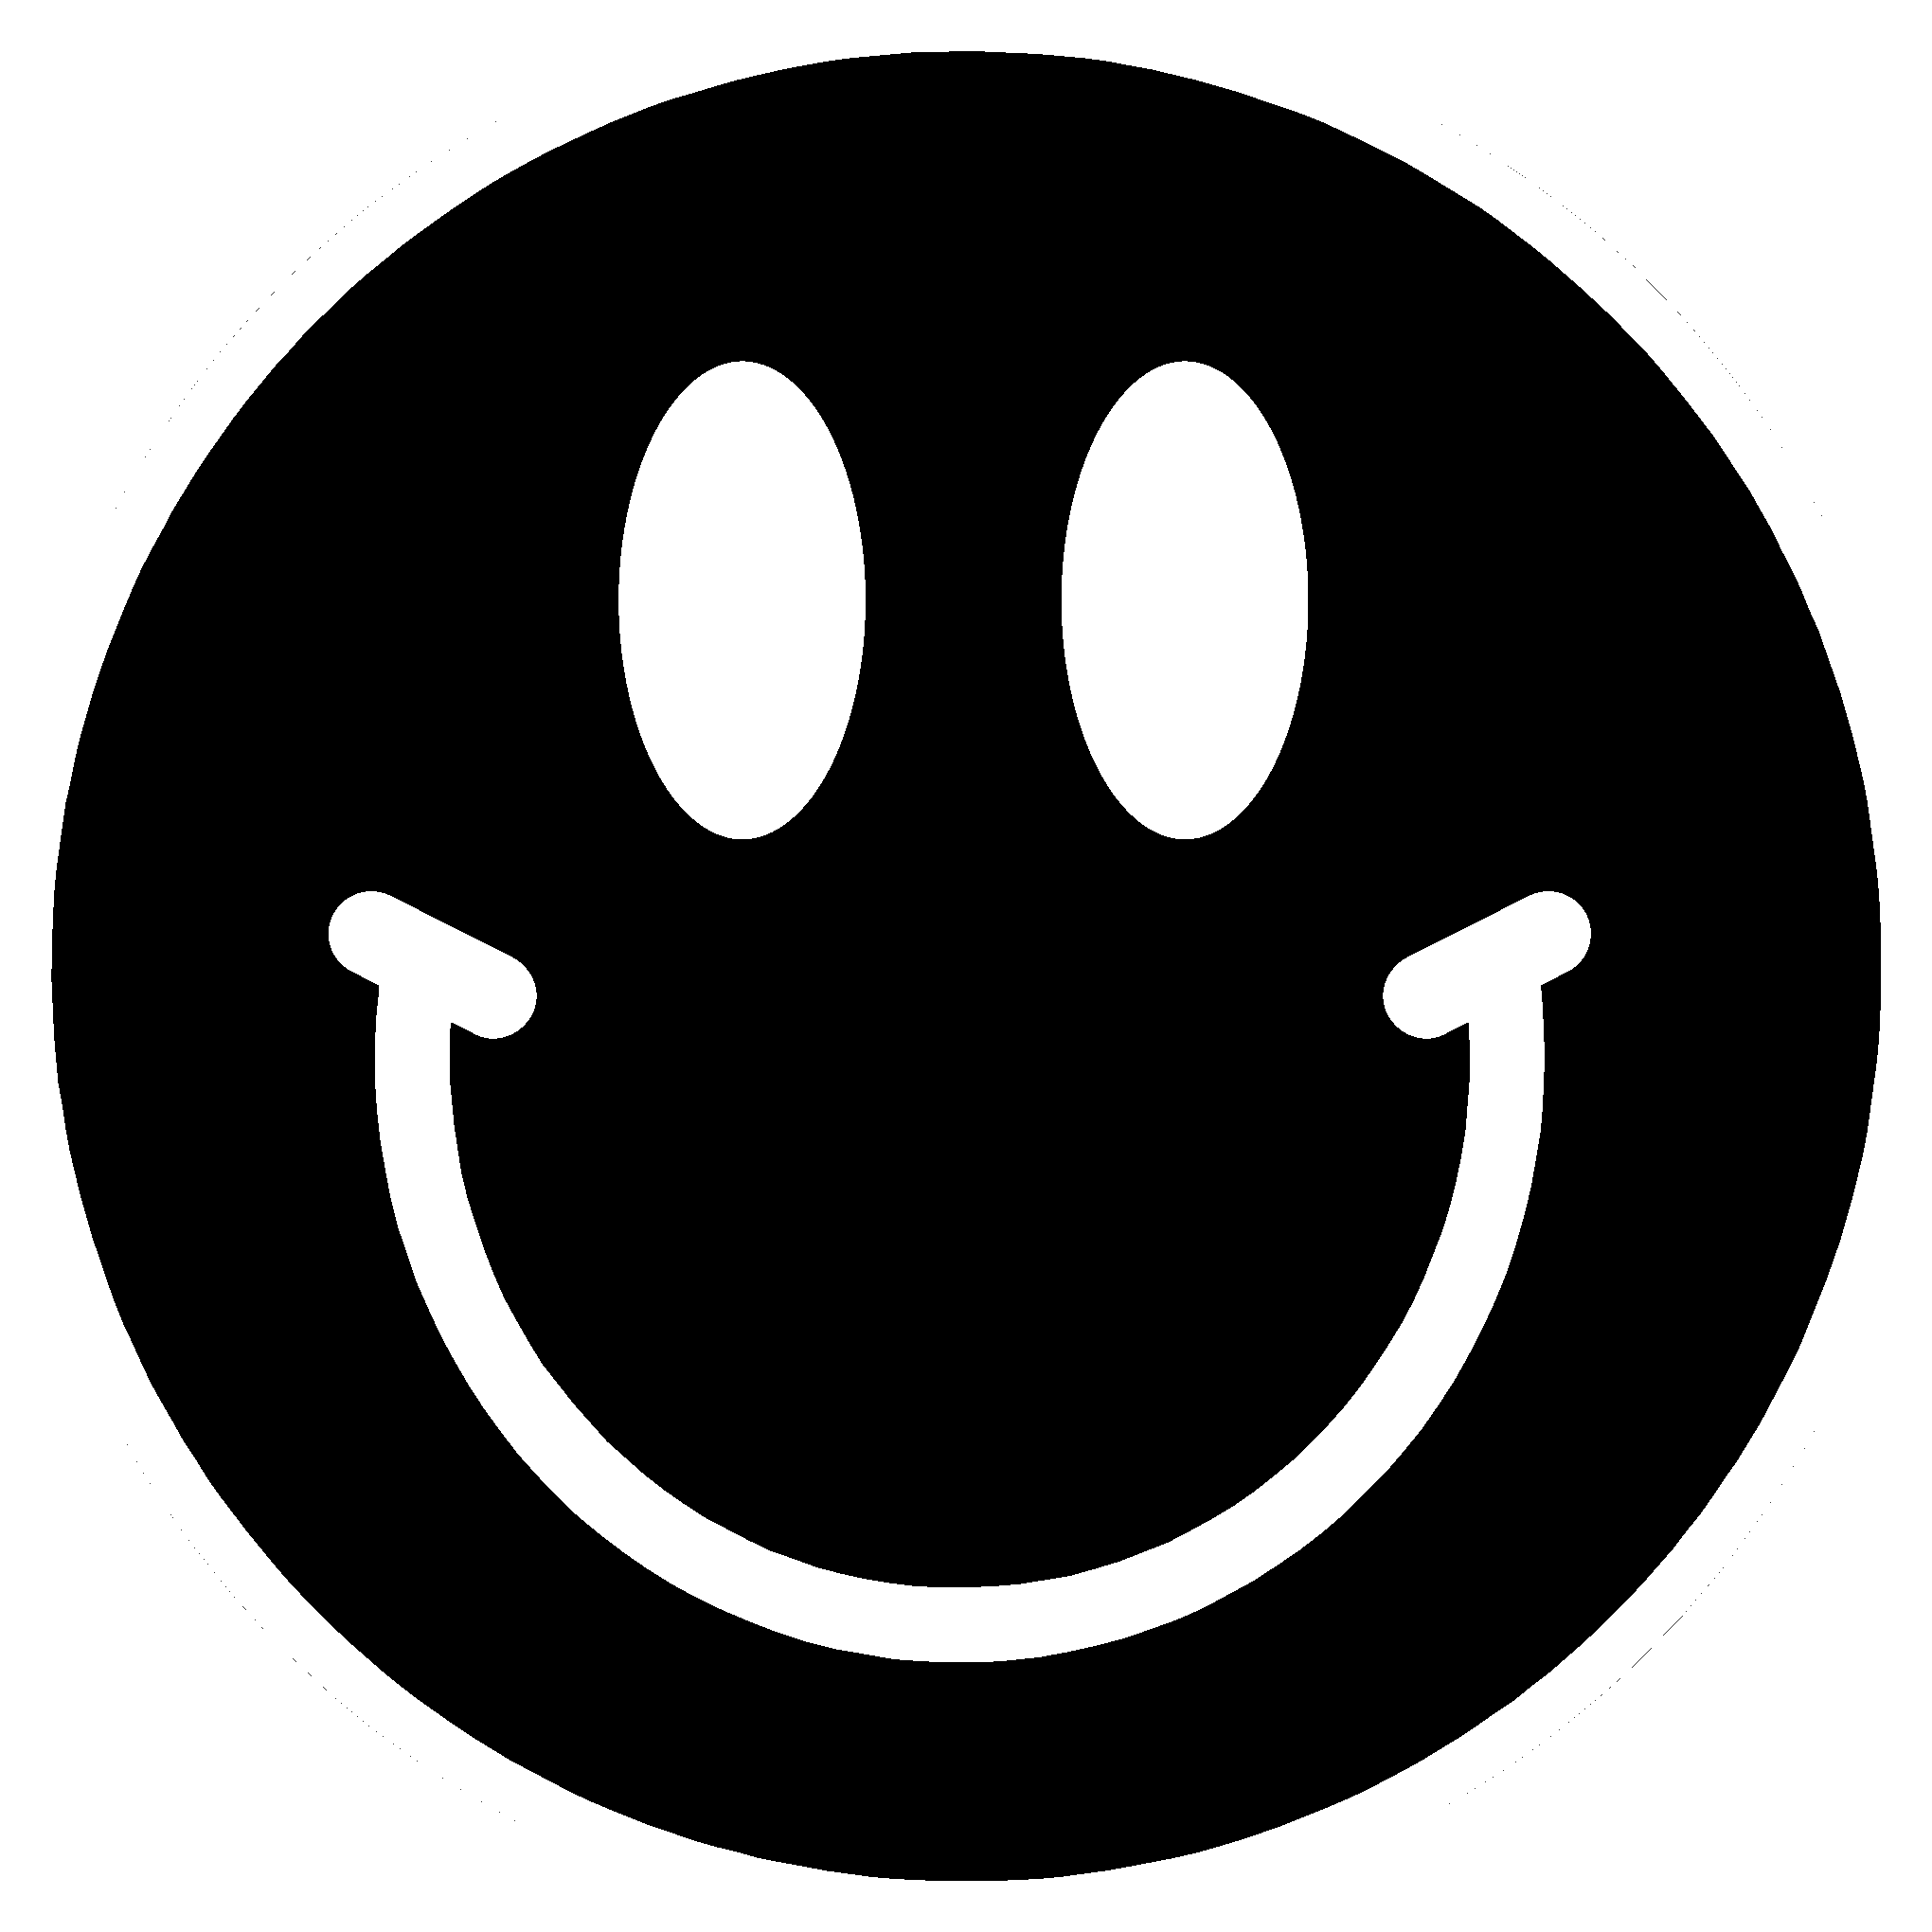 Smiley Face Black Backgrounds   Wallpaper Cave